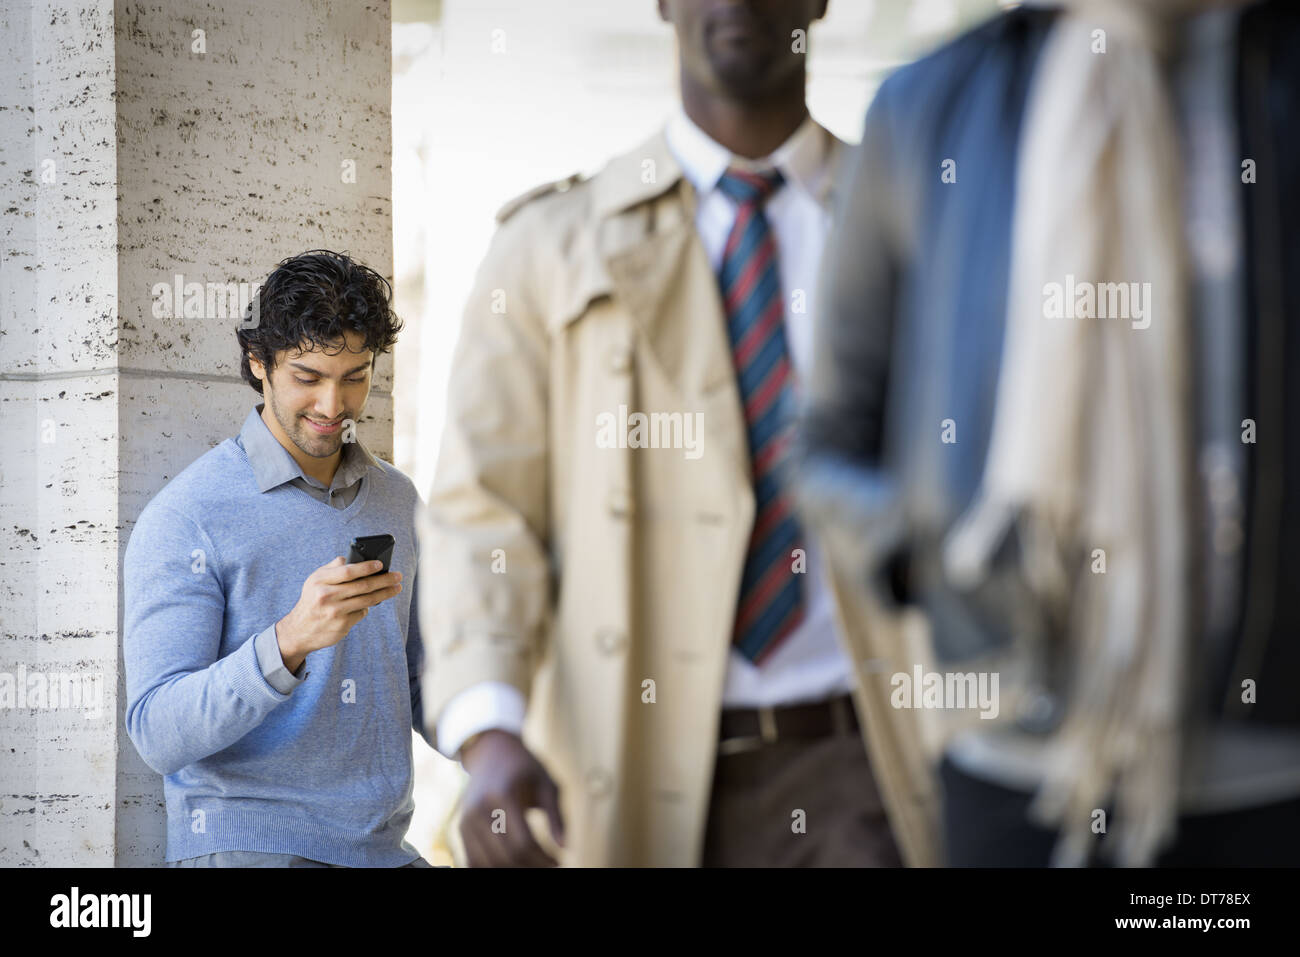 Three people on the sidewalk, a man using his mobile phone, a man in a raincoat, and a young man walking along the street. - Stock Image